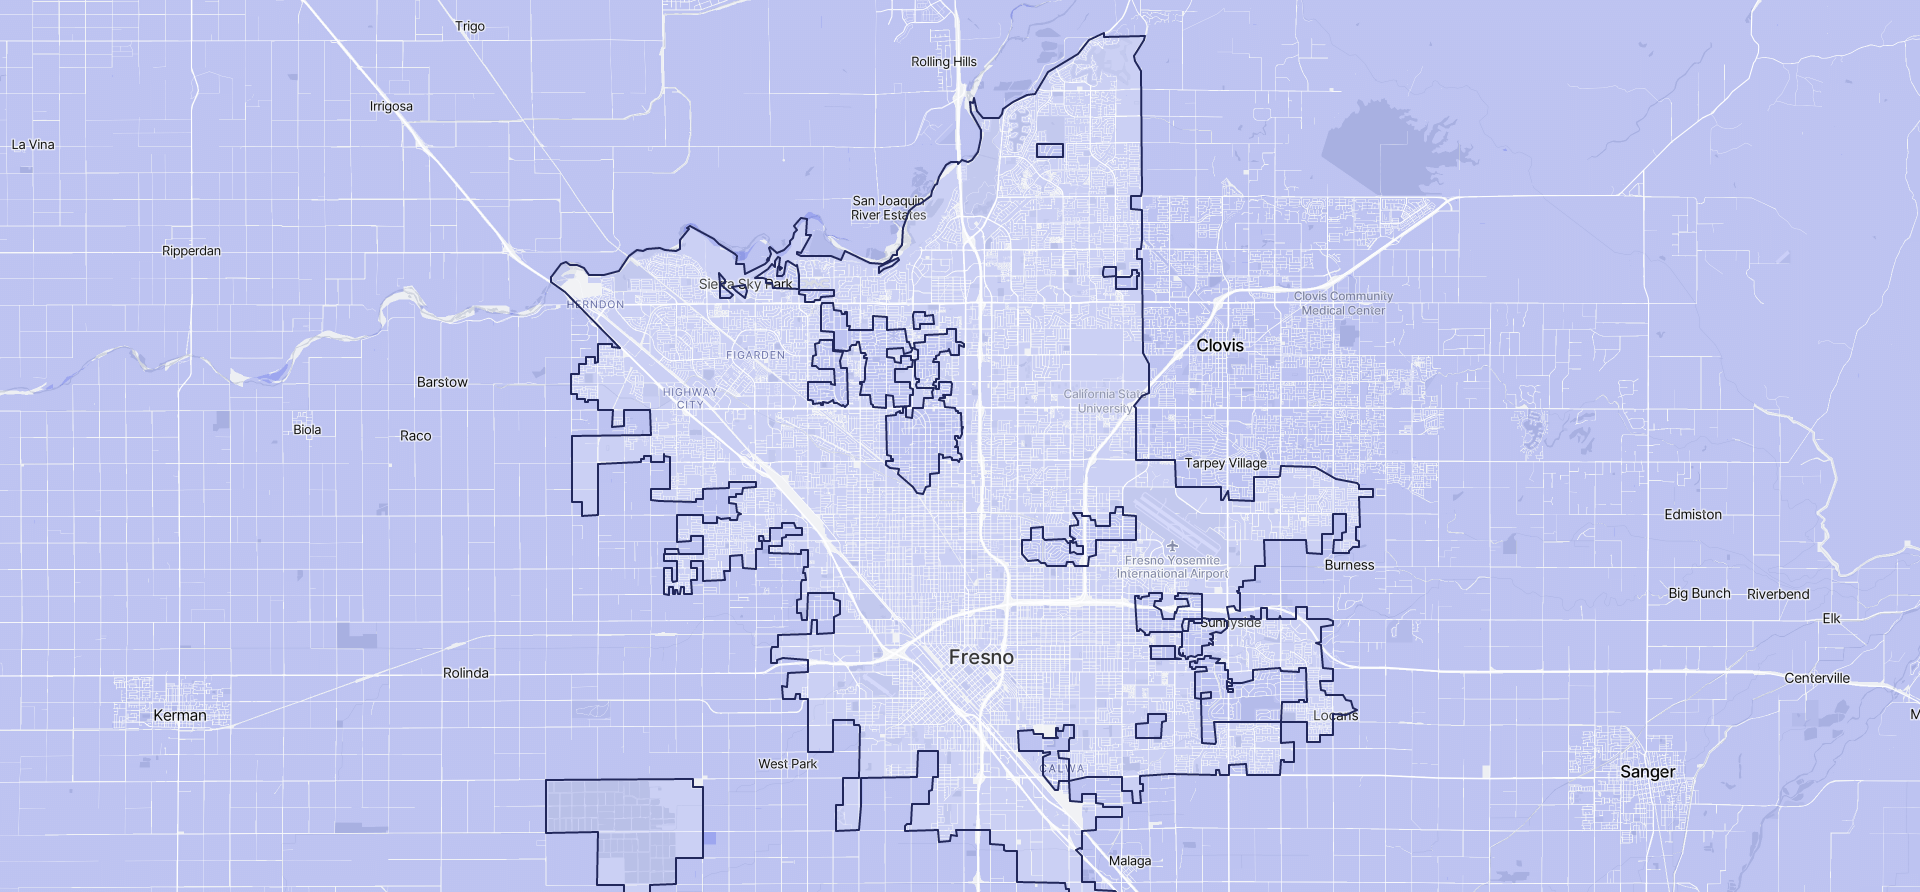 Image of Fresno boundaries on a map.